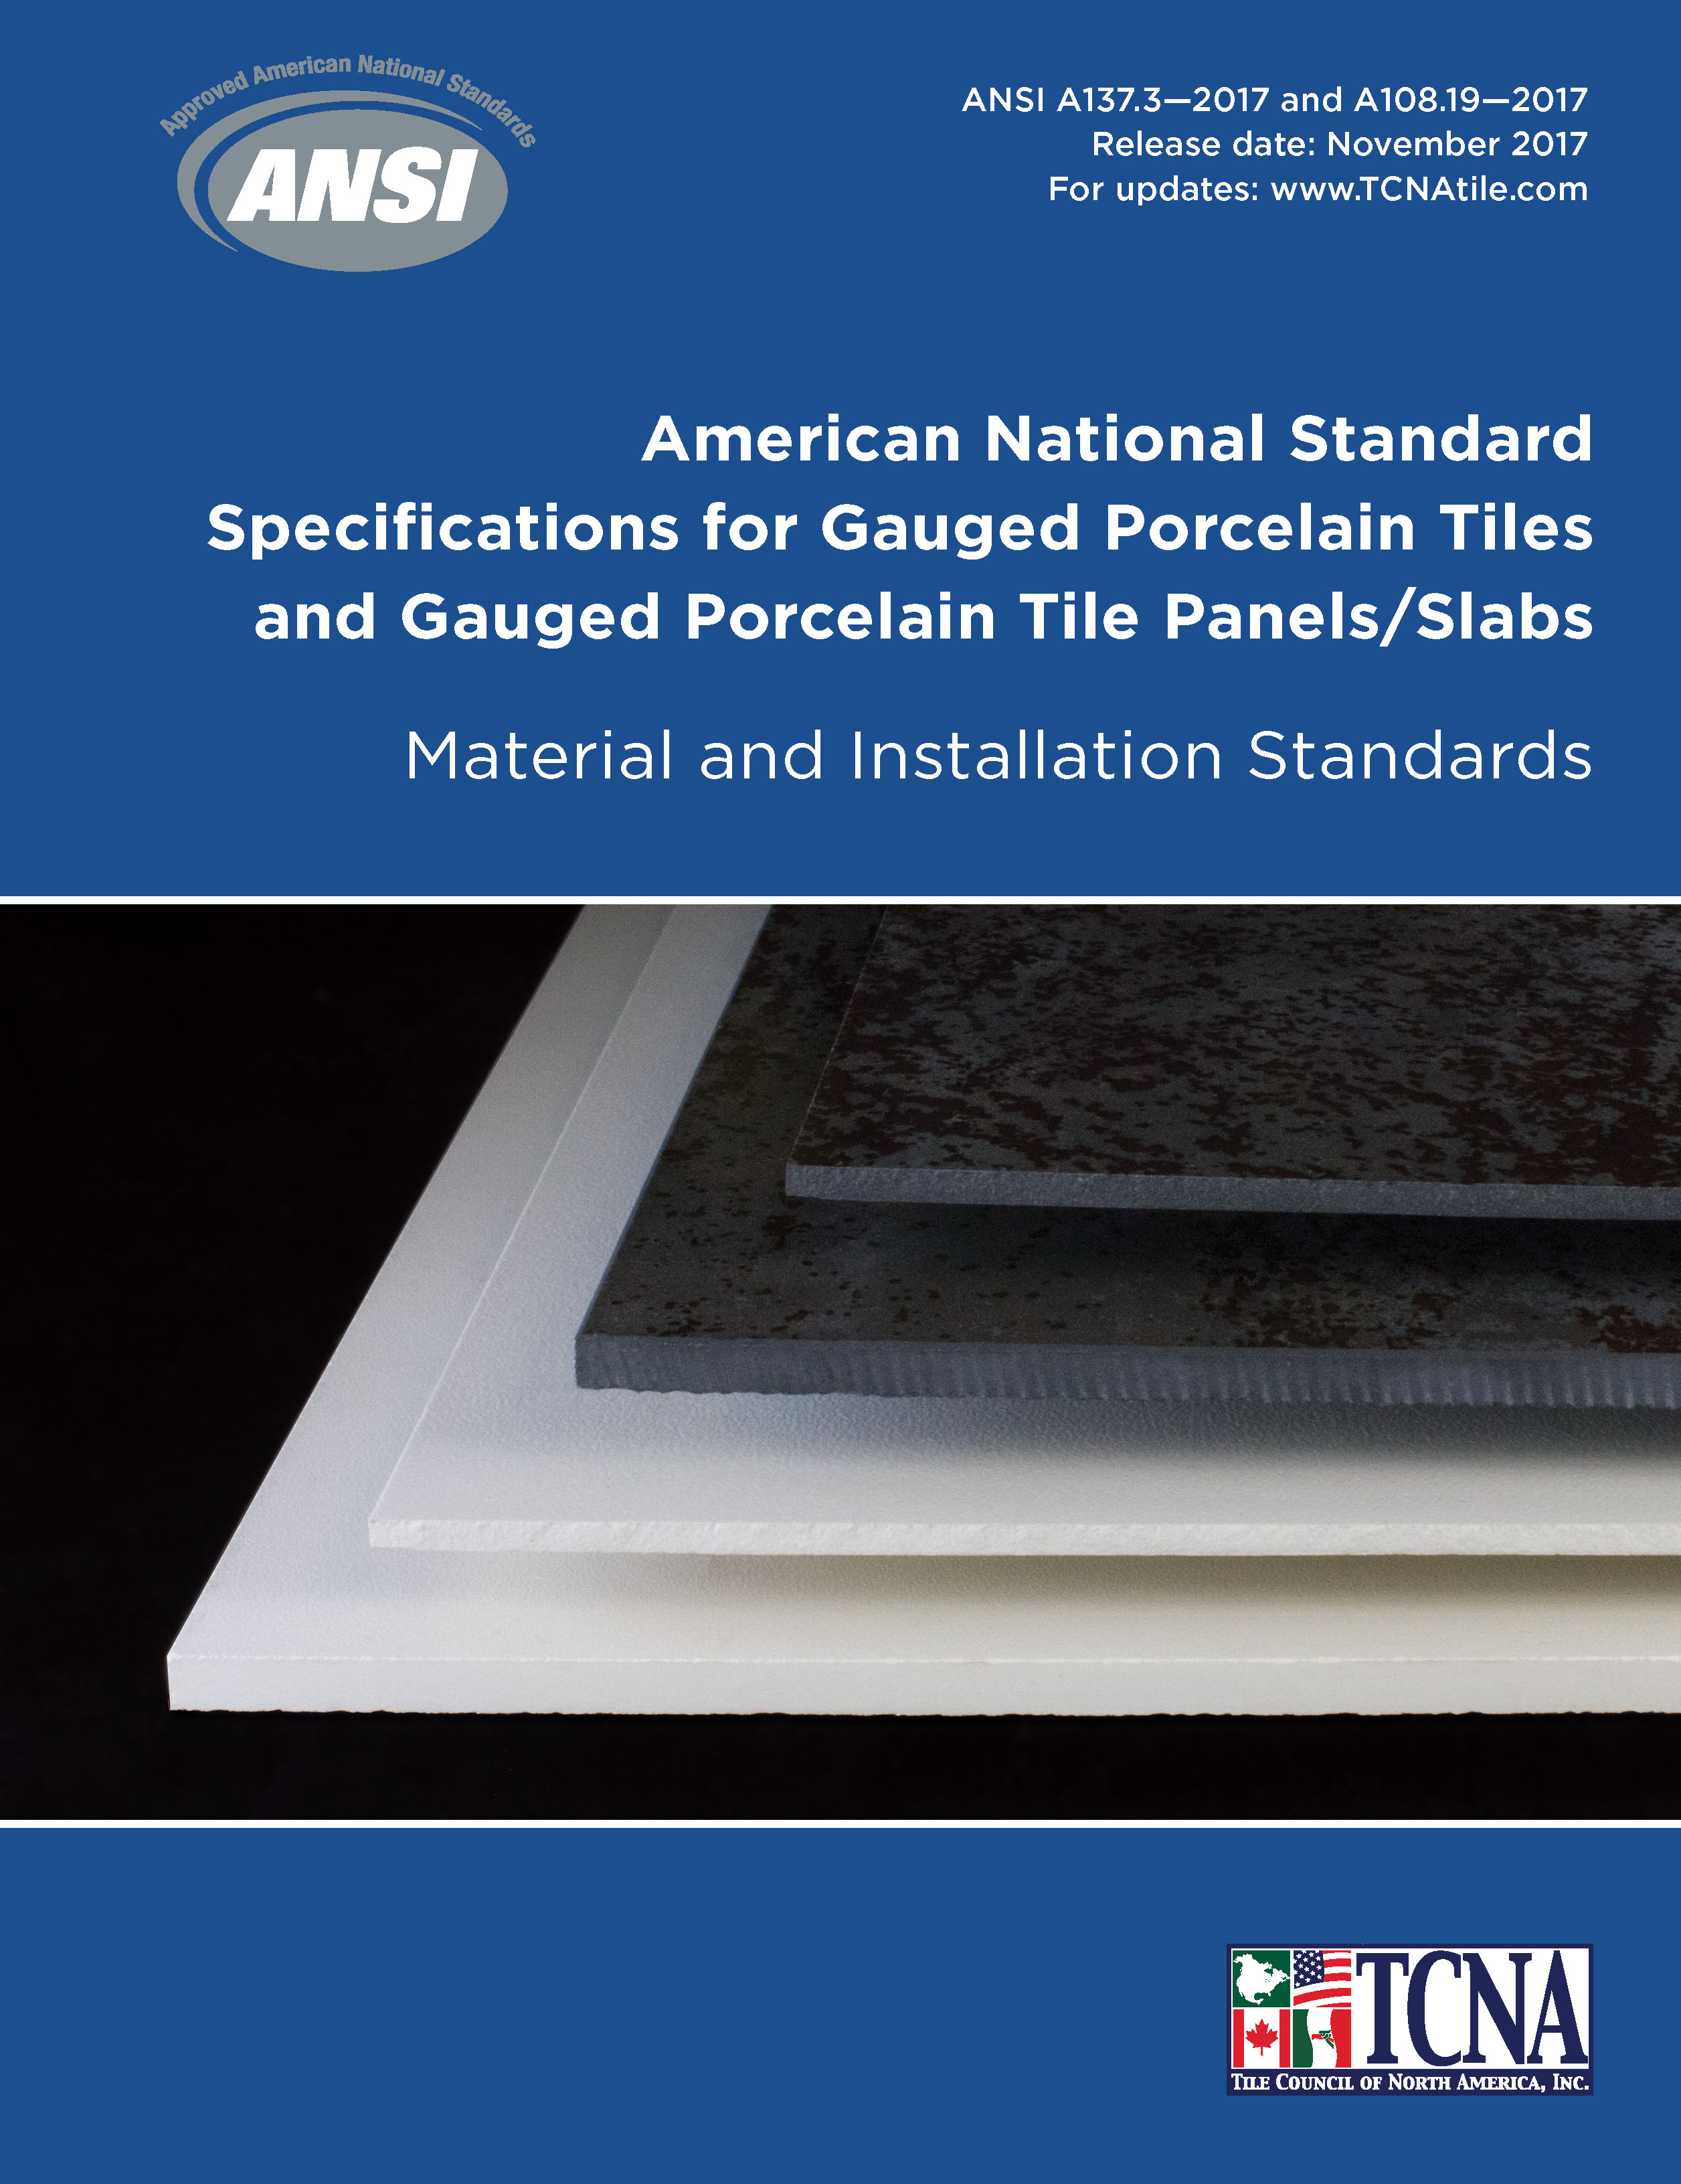 Ansi a1373 and a10819 2017 gauged porcelain tiles and tile panels american national standard specifications for gauged porcelain tile and gauged porcelain tile panelsslabs material and installation standards release dailygadgetfo Choice Image